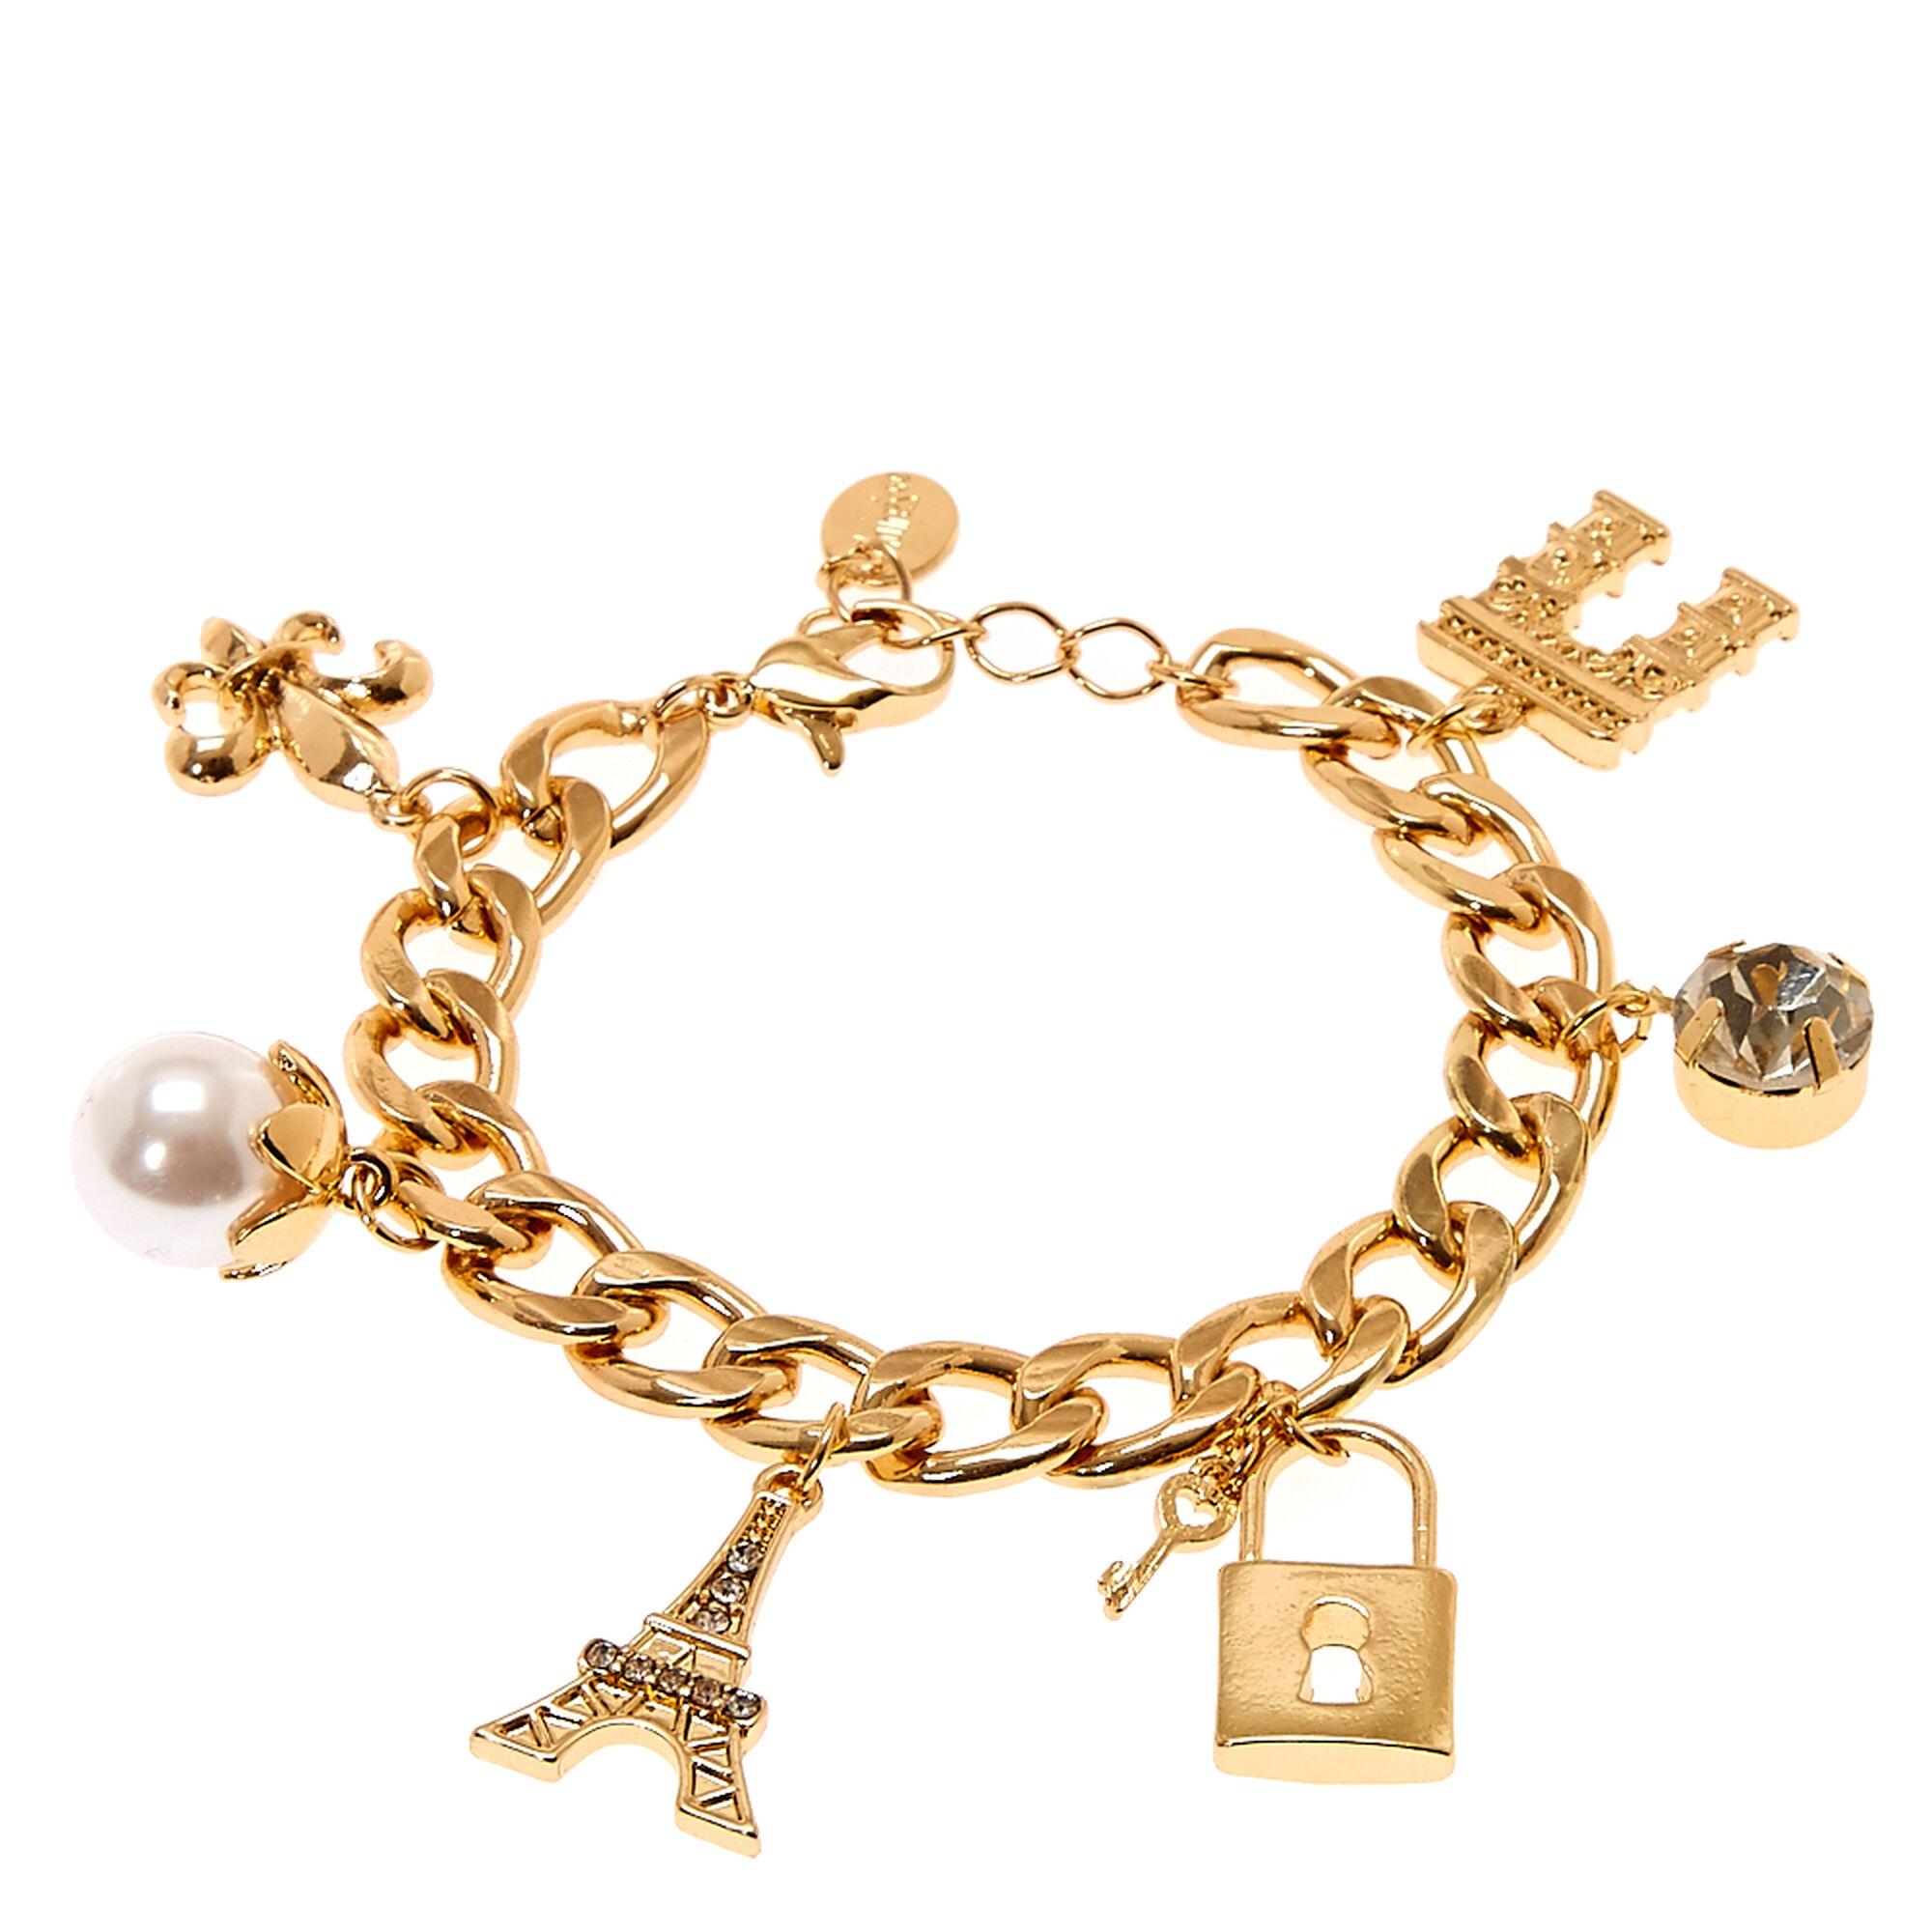 Gold Paris Charm Bracelet